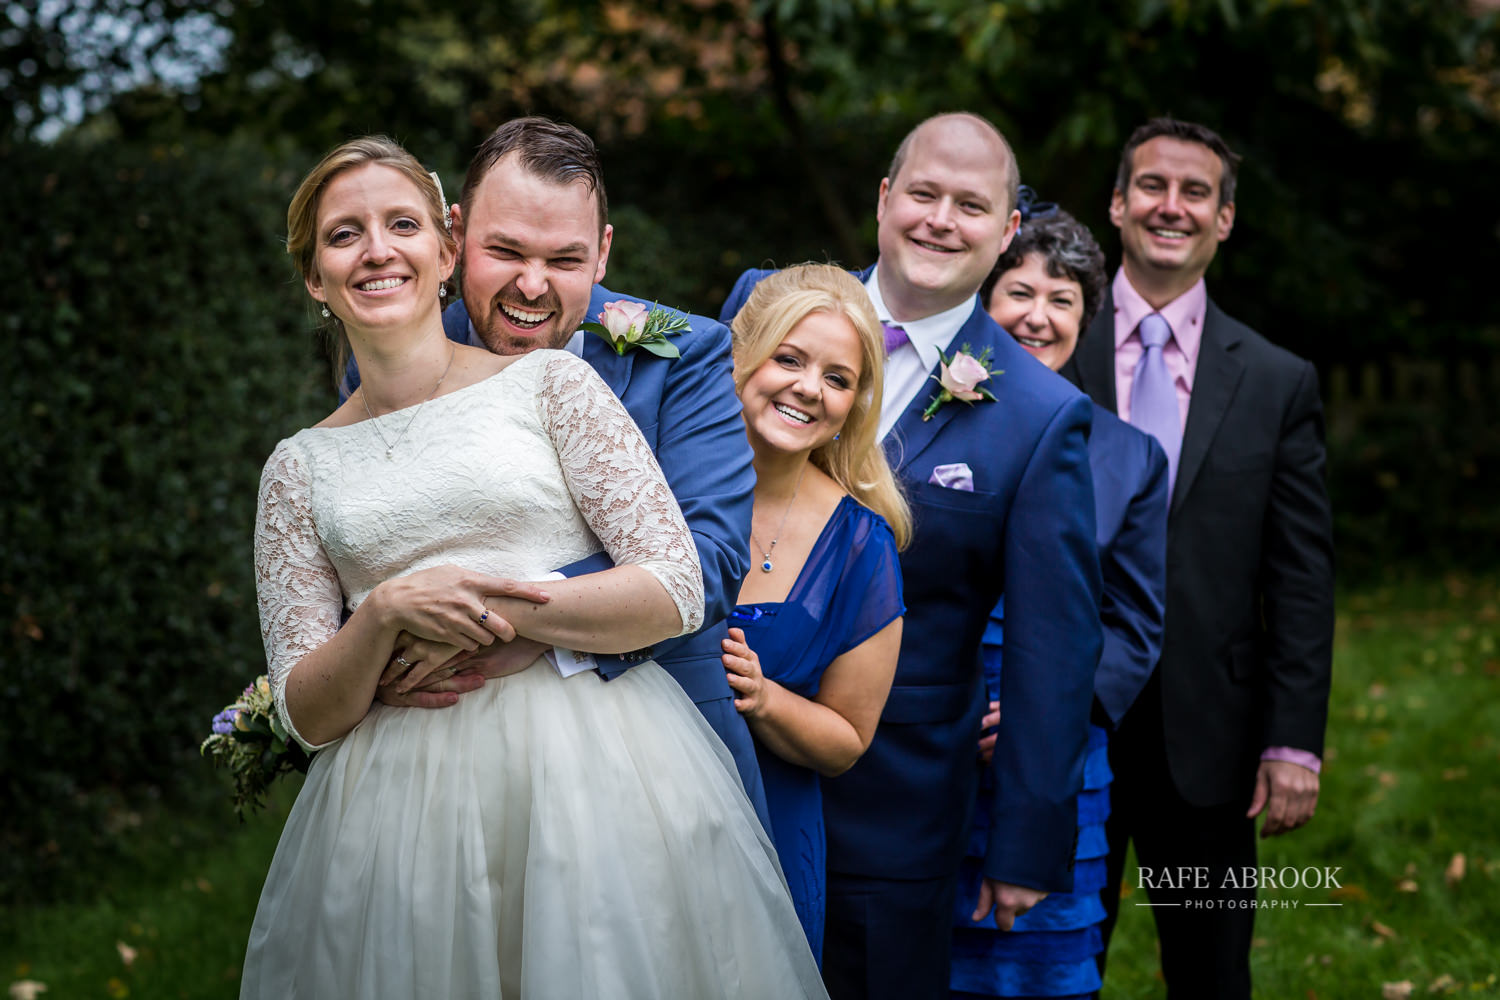 thursley village hall guildford surrey wedding hertfordshire wedding photographer-1304.jpg